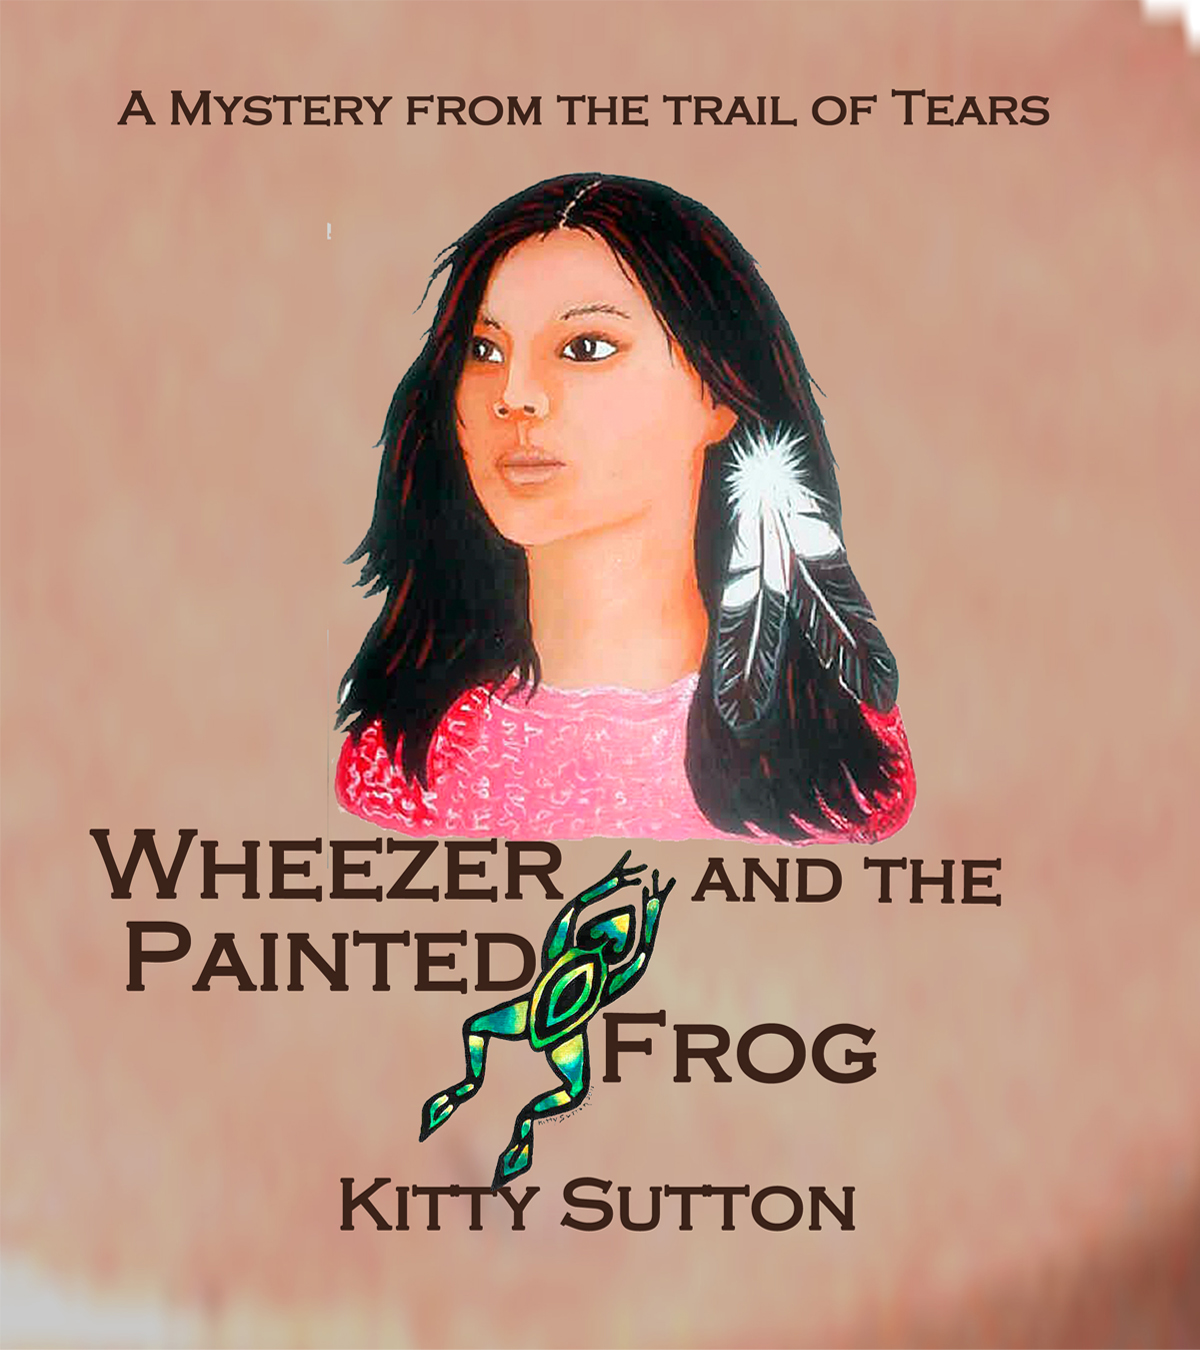 Wheezer And the Painted Frog